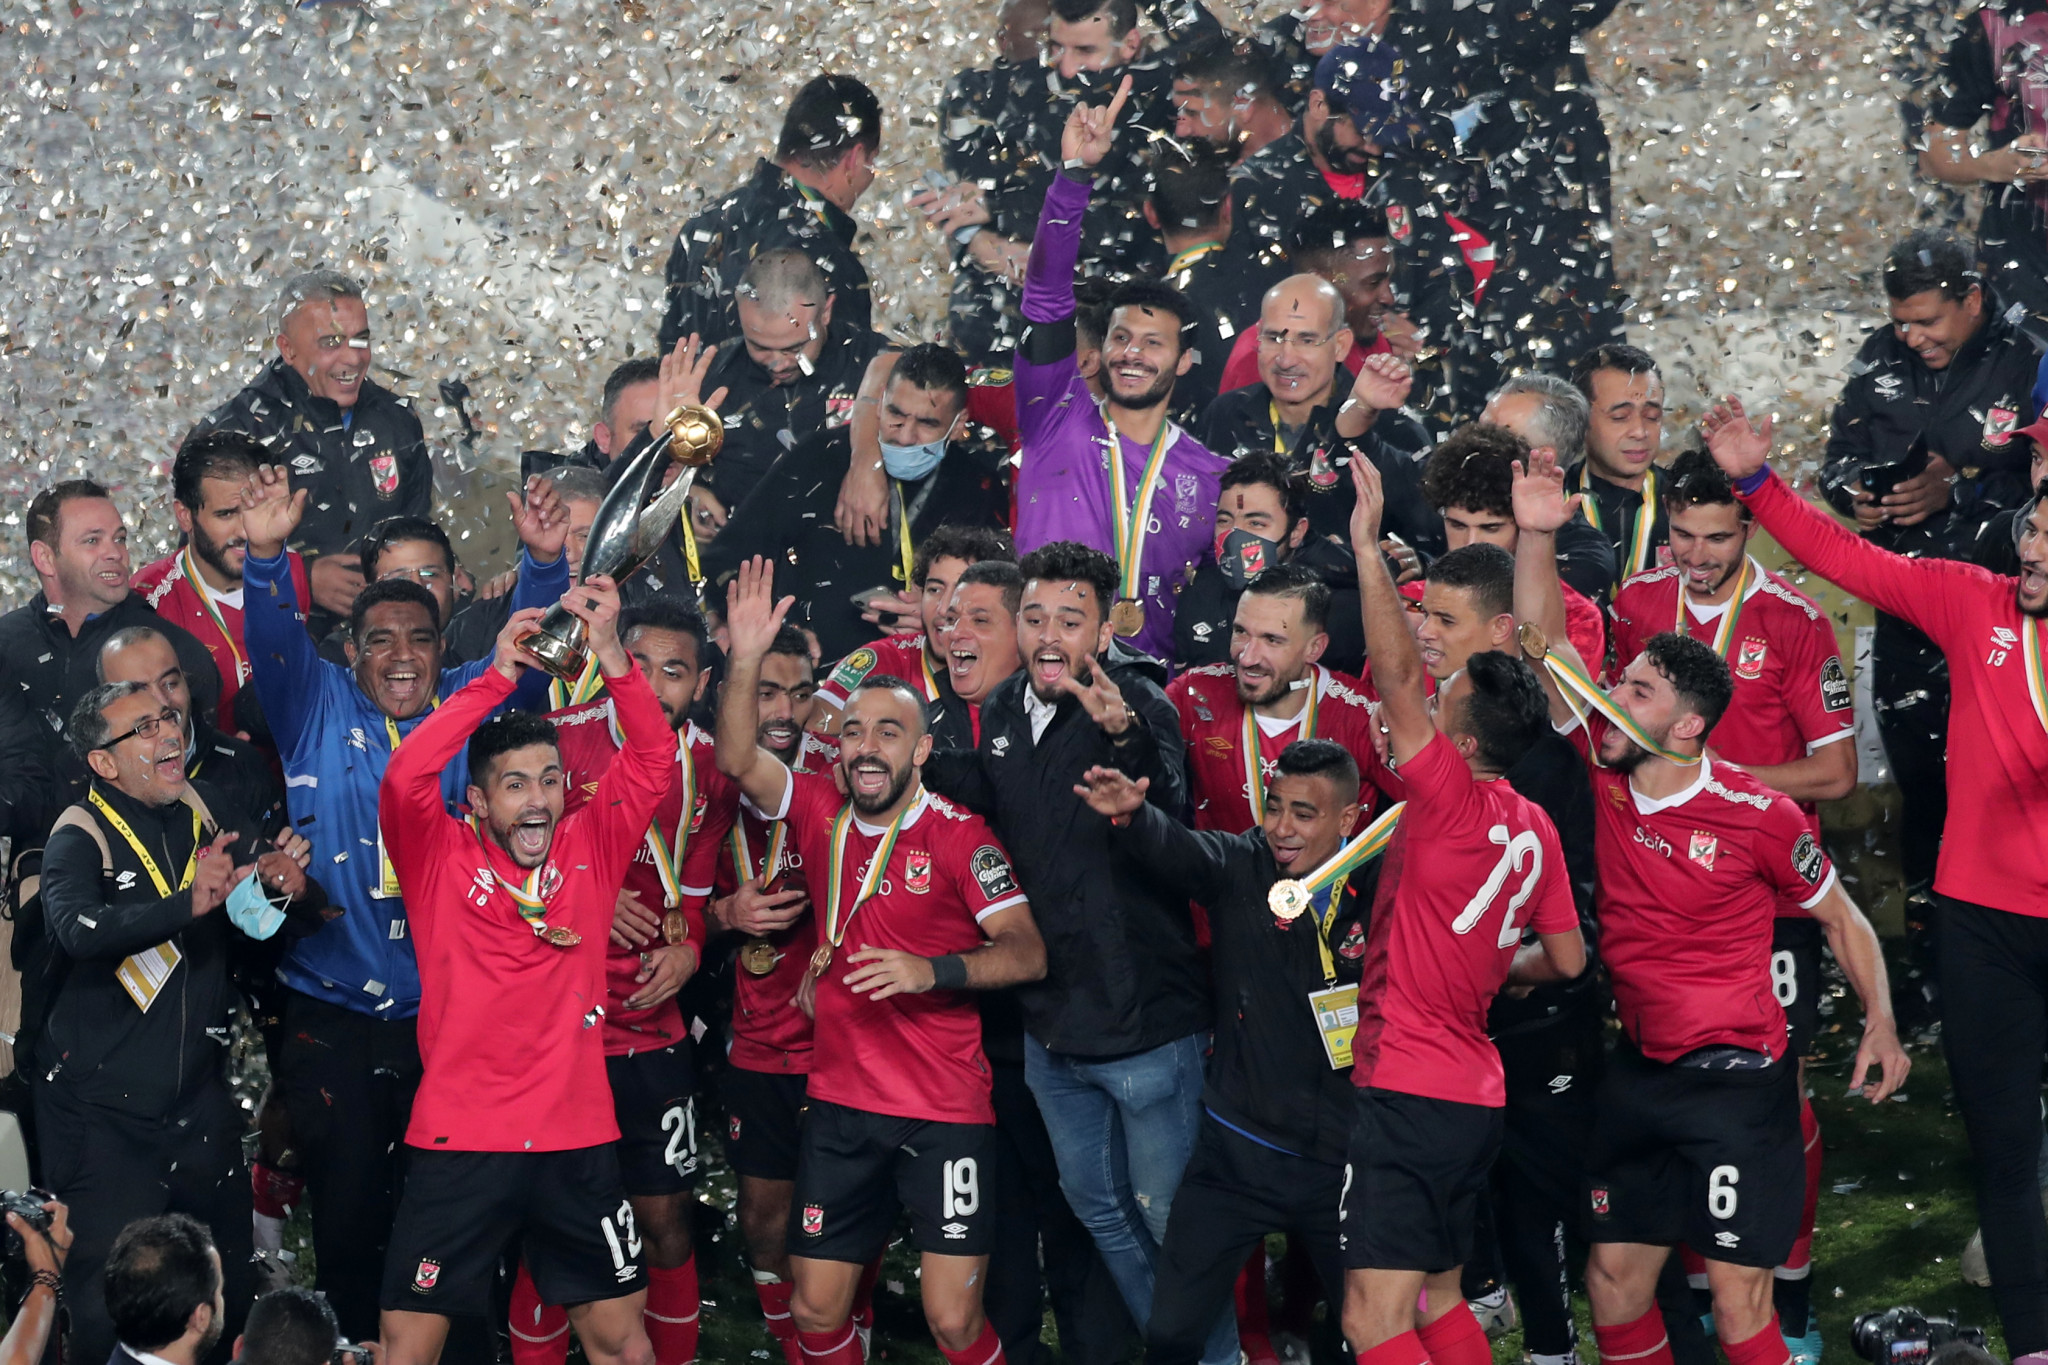 Al Ahly aiming to upset at FIFA Club World Cup in Doha